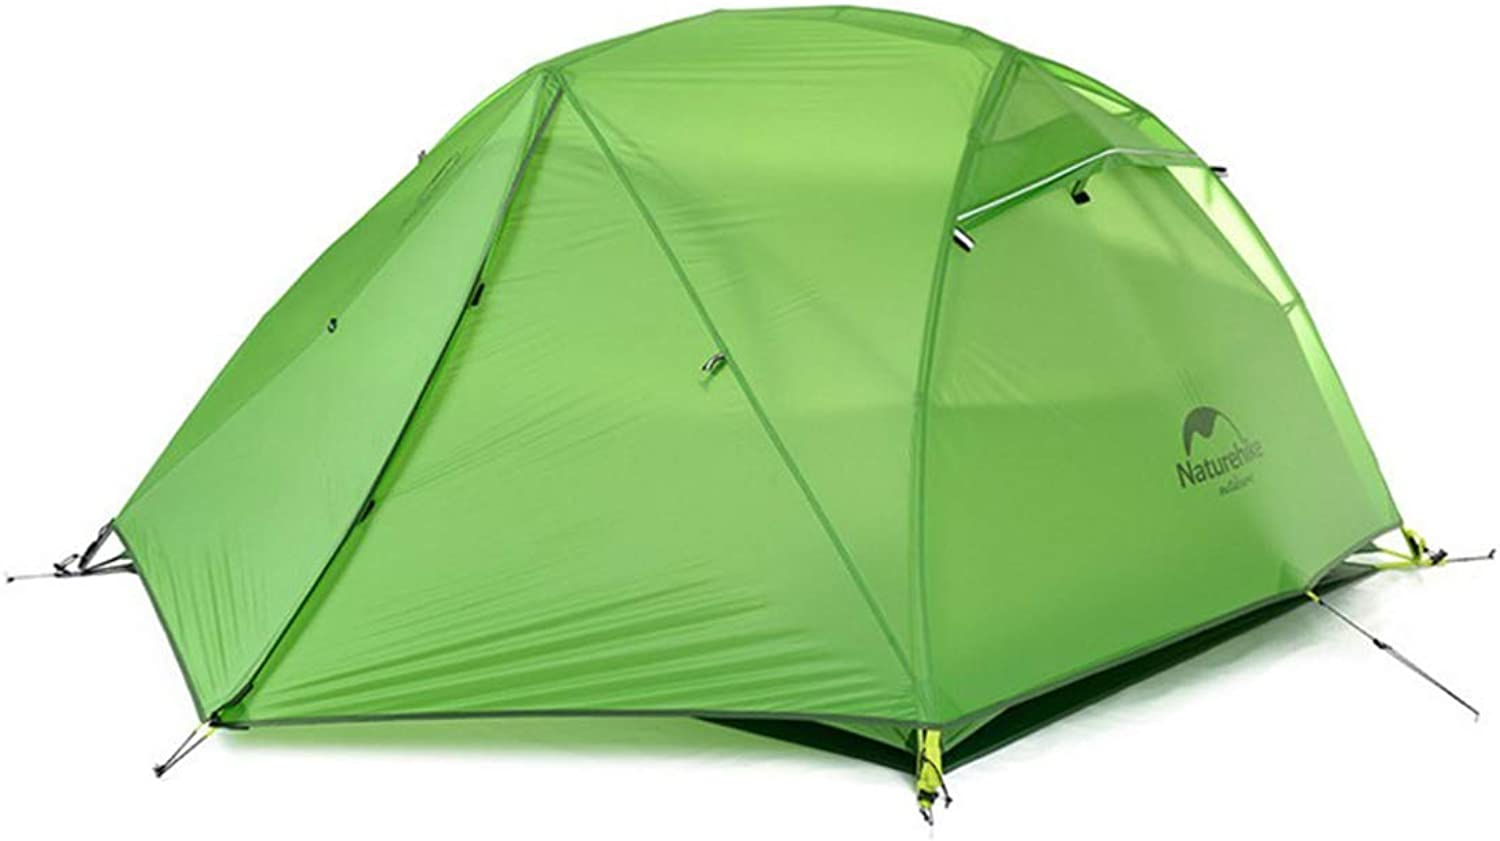 Silica Gel Double Decker Light Rain Proof Camping Tent MATCHANT (color   Green)